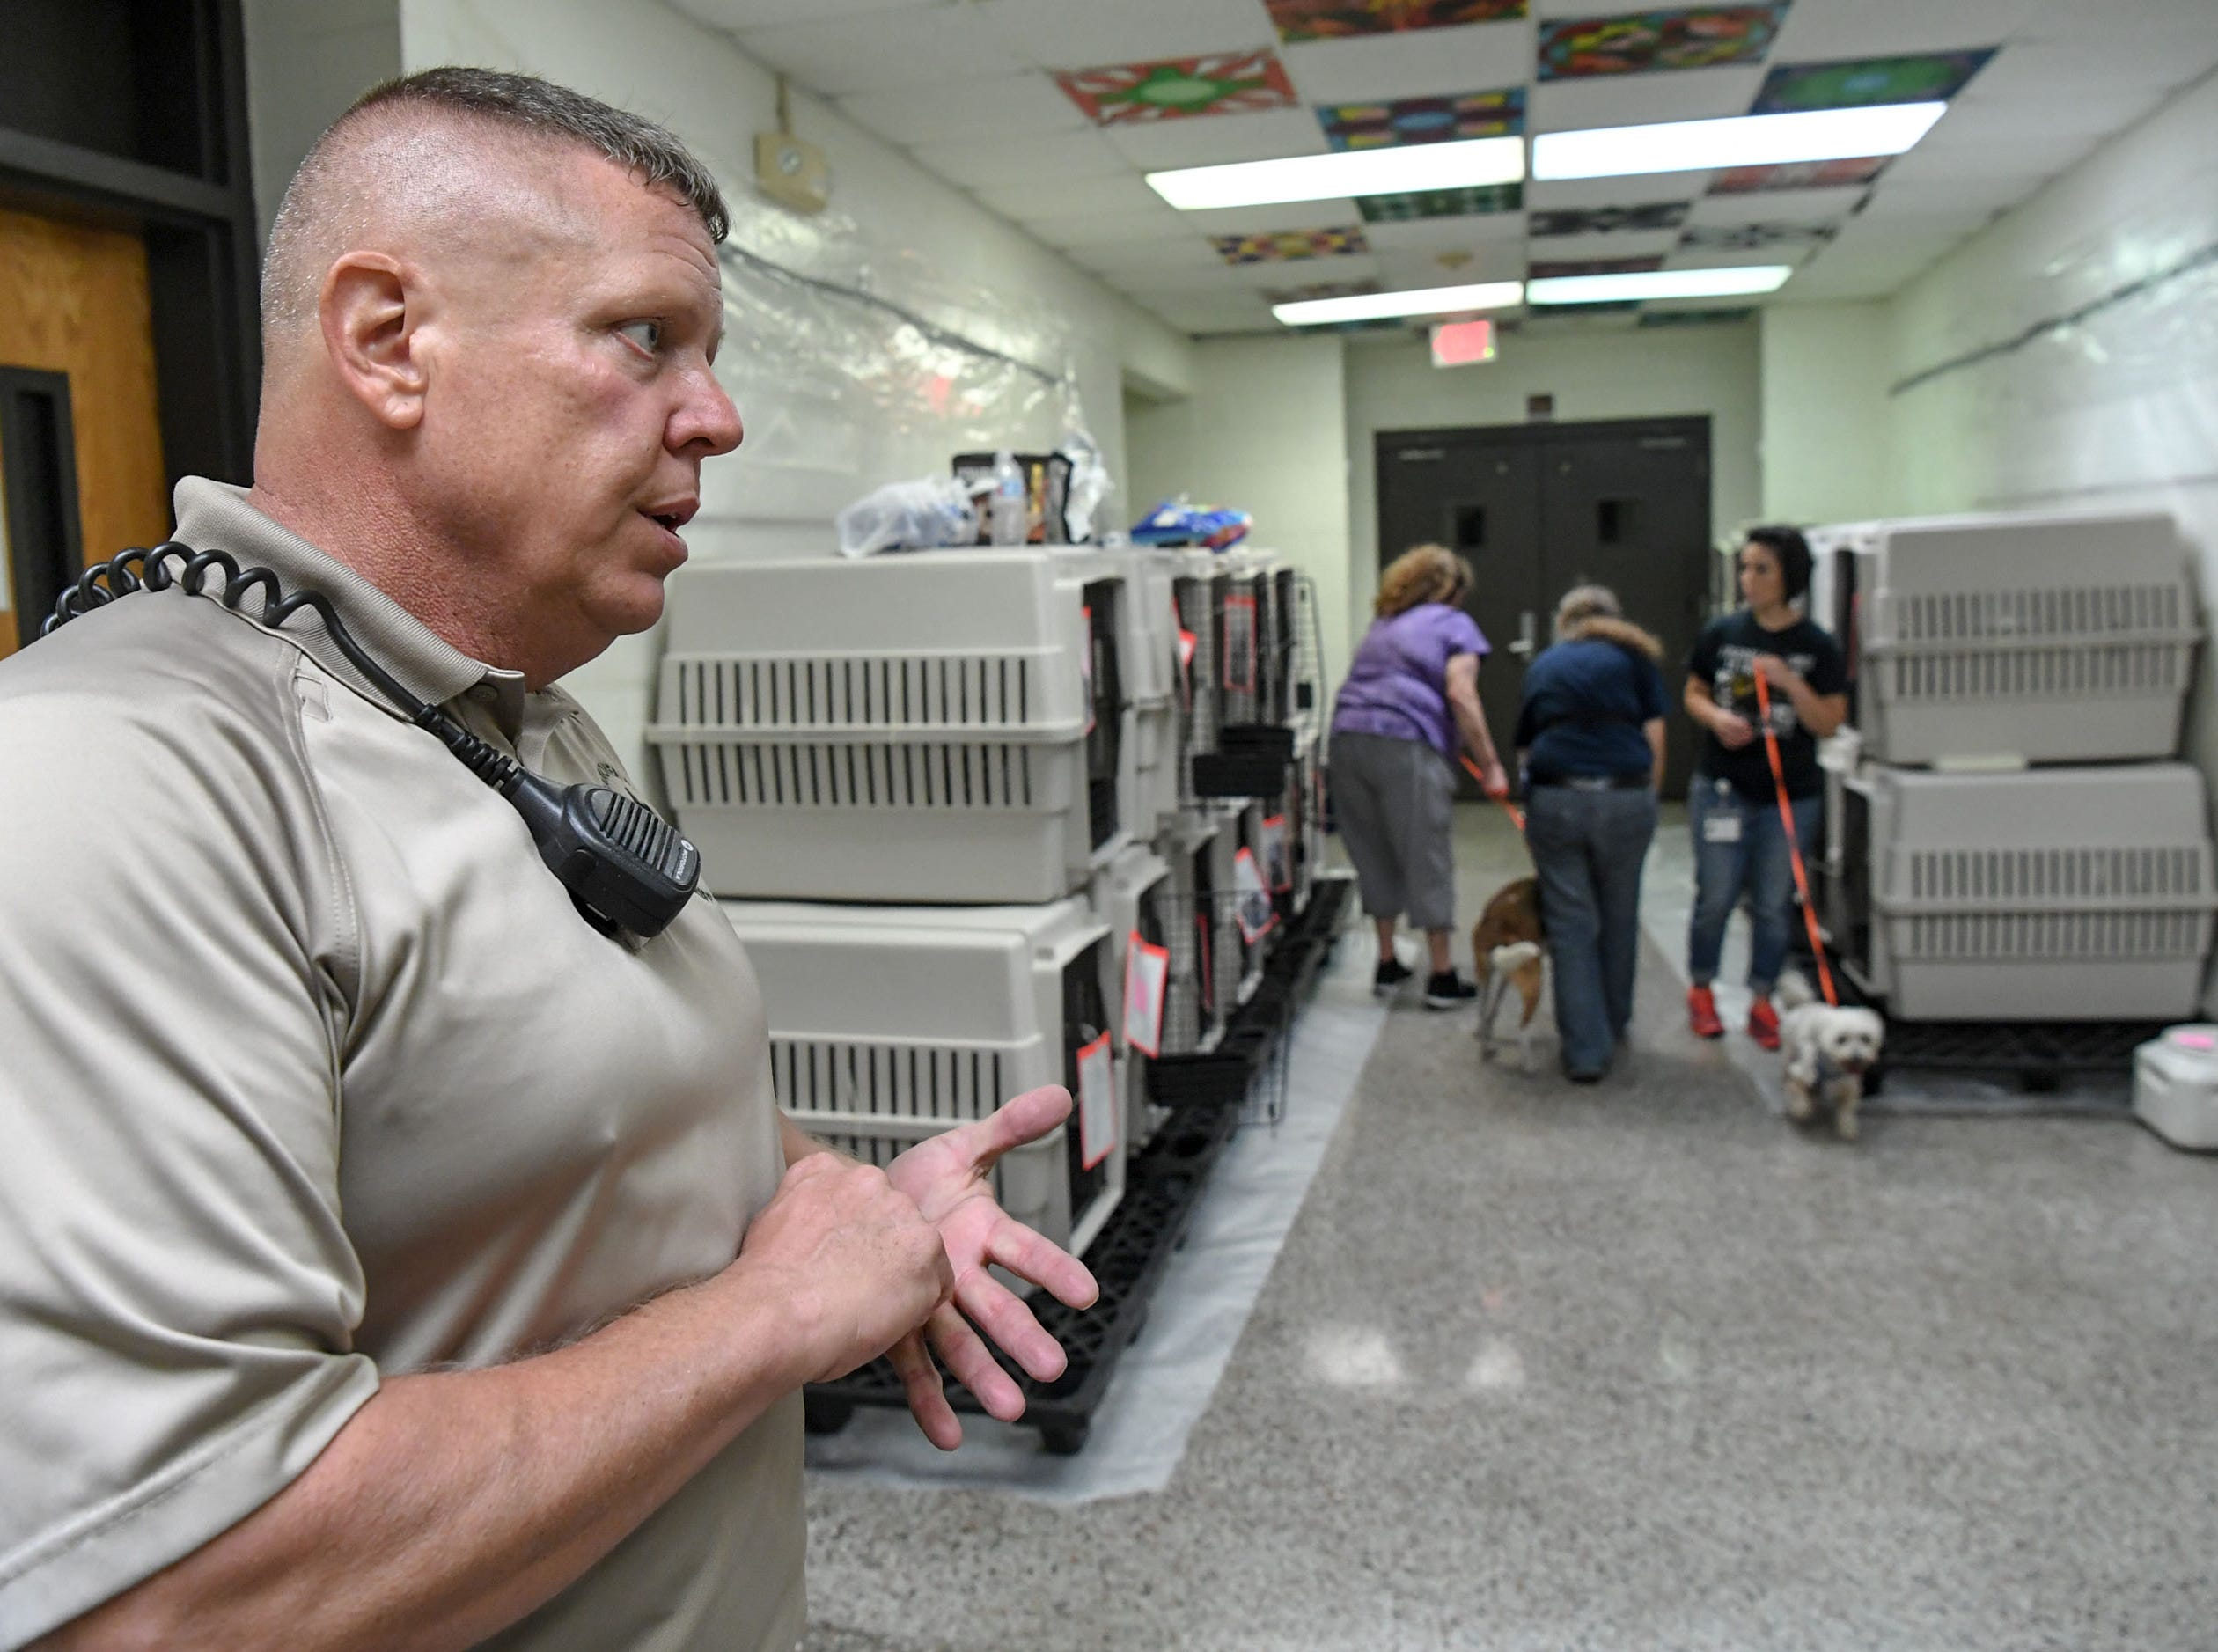 Stephen Watson, a deputy for the New Hanover County Sheriff's office stands nearby as dogs and cats are brought to separate areas at the county emergency shelter held at Trask Middle School in Wilmington, North Carolina on Tuesday, September 11, 2018.  Hurricane Florence is expected to make landfall in Wilmington Thursday night. (Ken Ruinard / Greenville News / Gannett USA Today Network / 2018 )